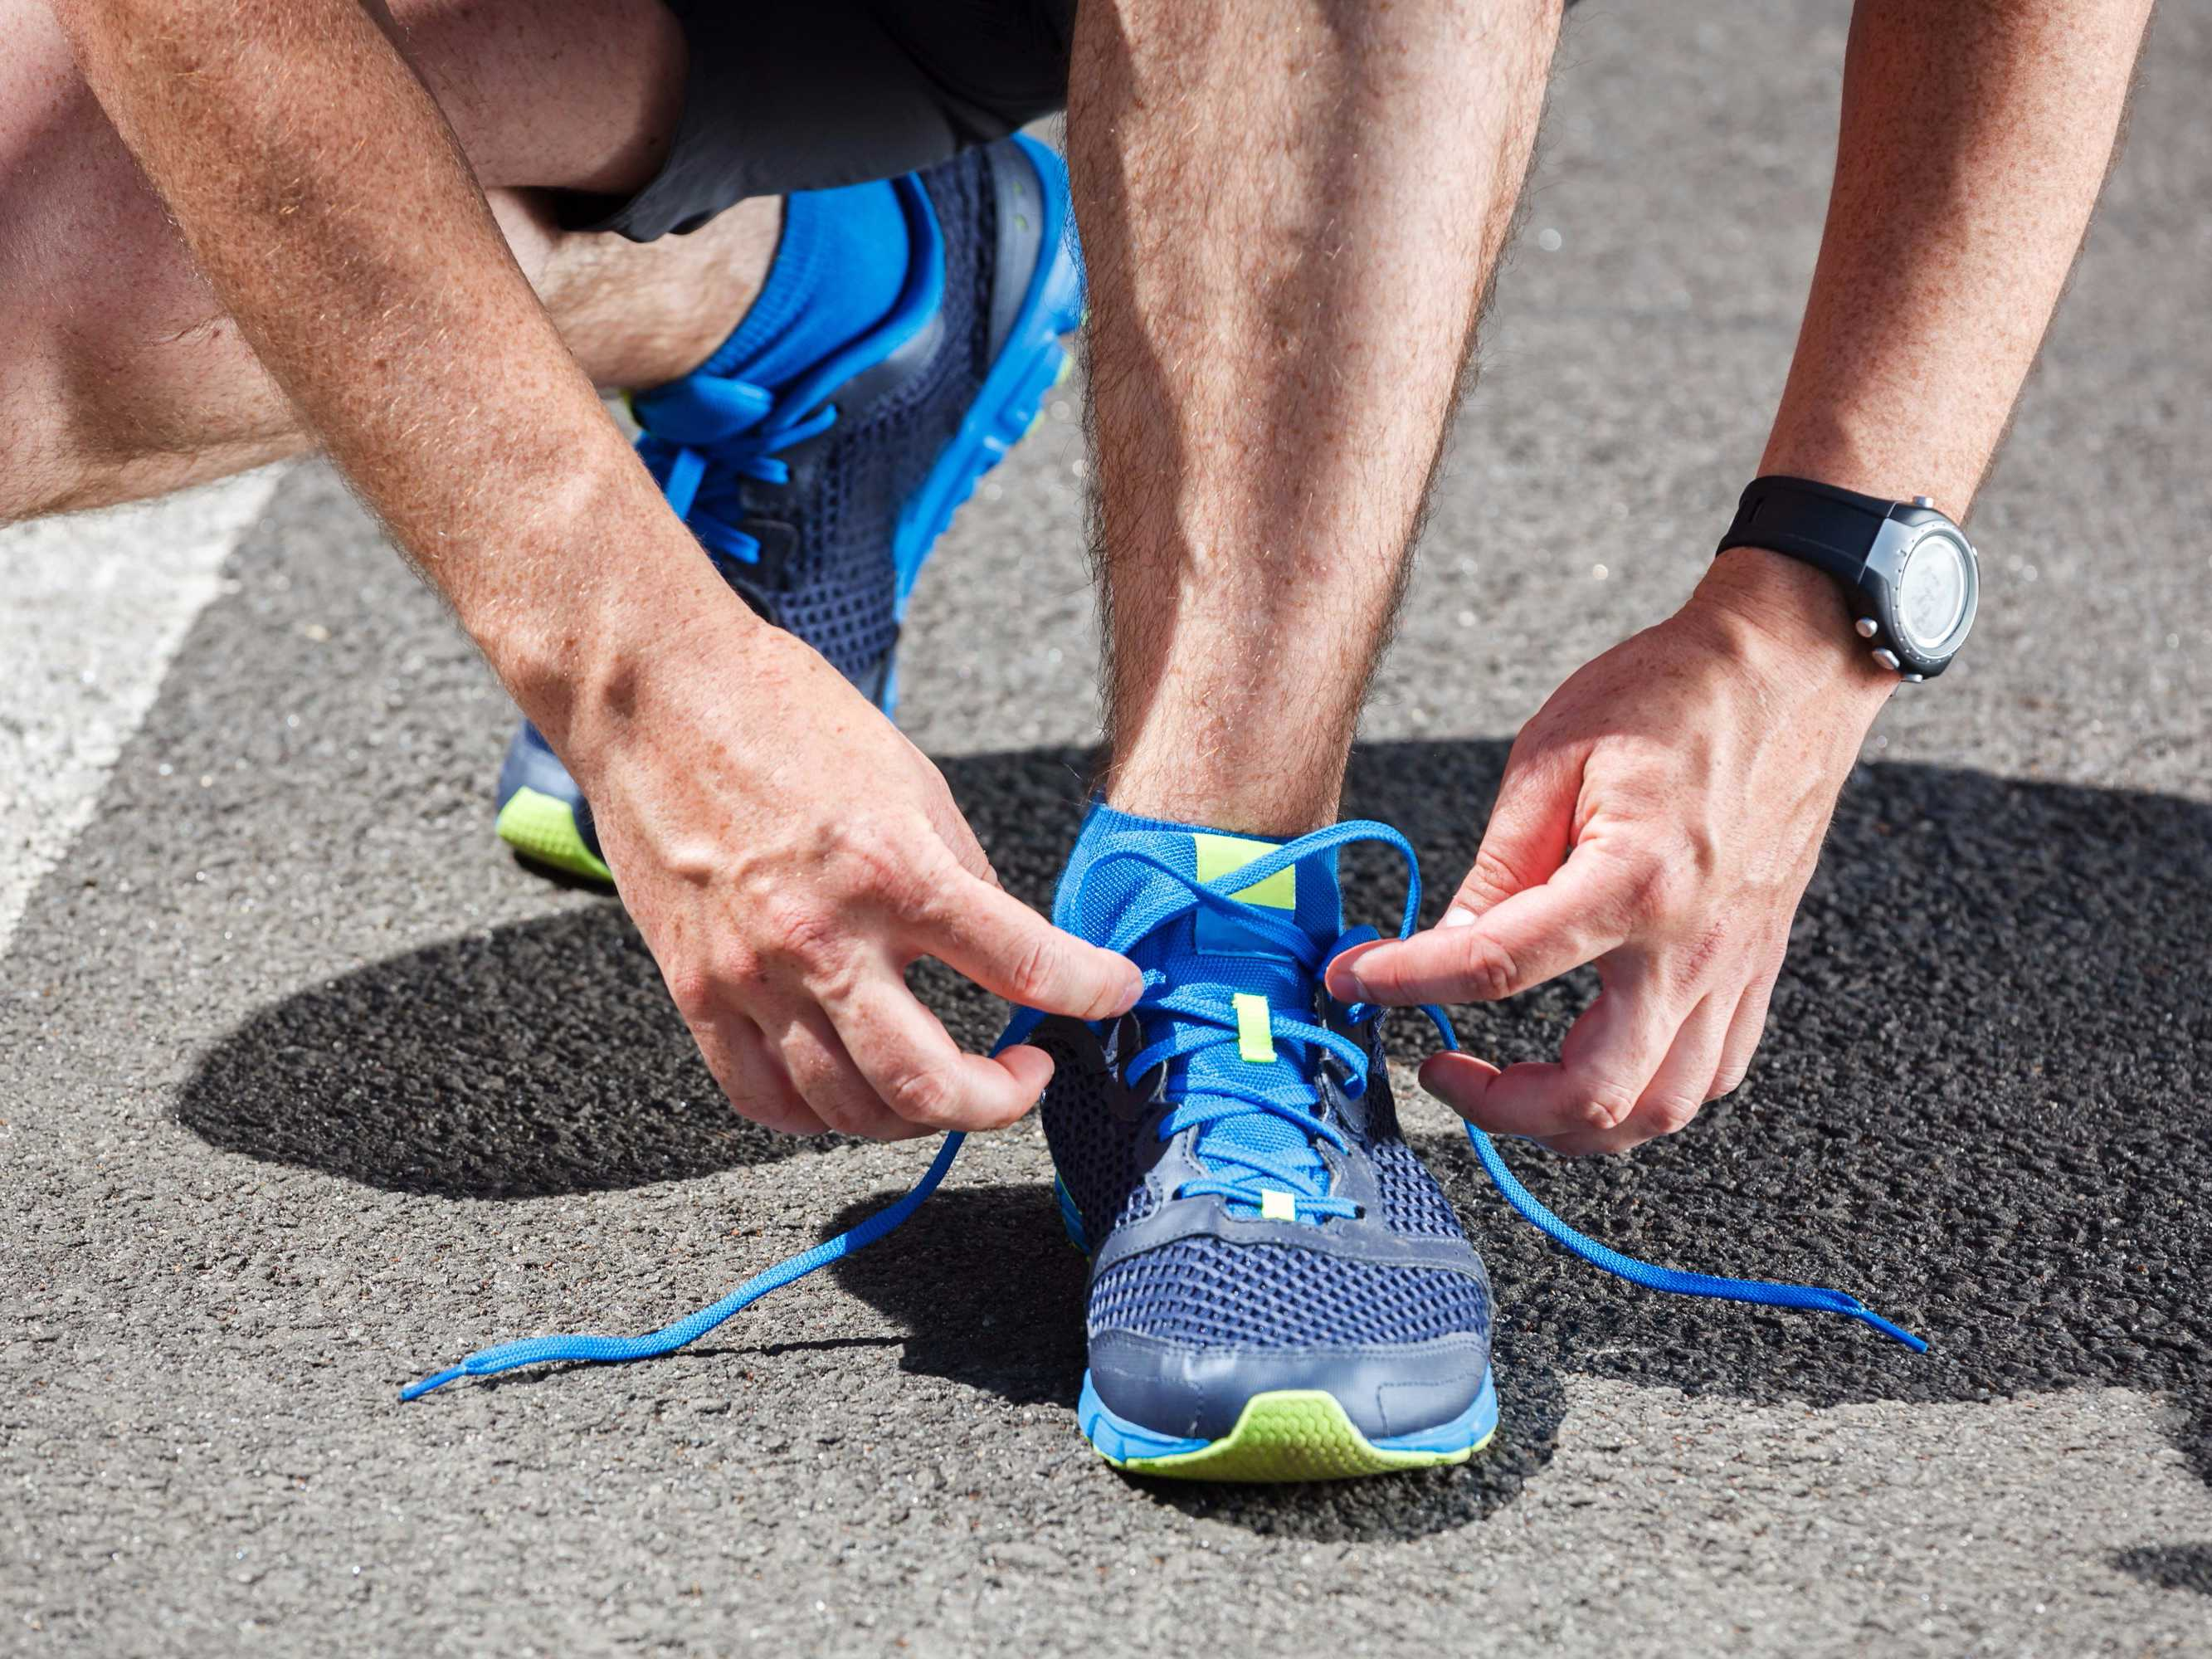 Scientists Figure Out Why Your Shoelaces keep Untying